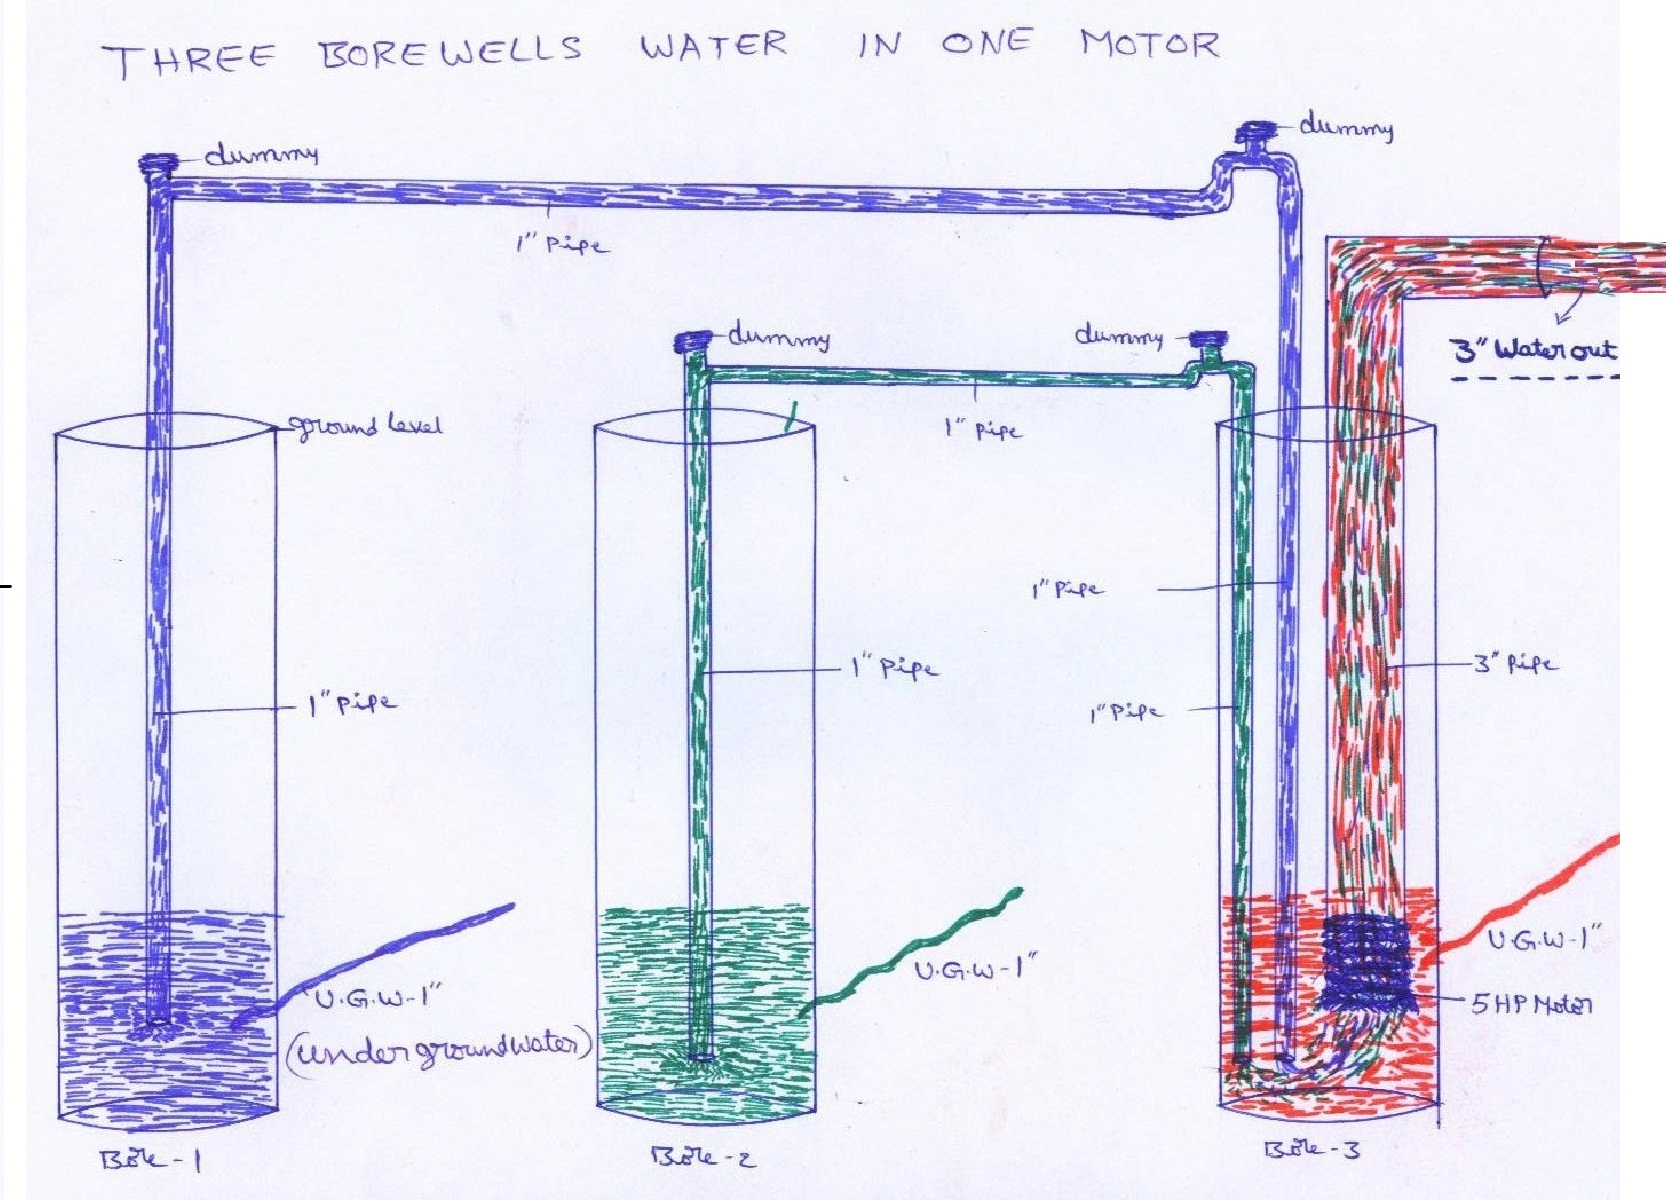 Many Bore Wells Water in one Motor Through Air pressure (6).jpg